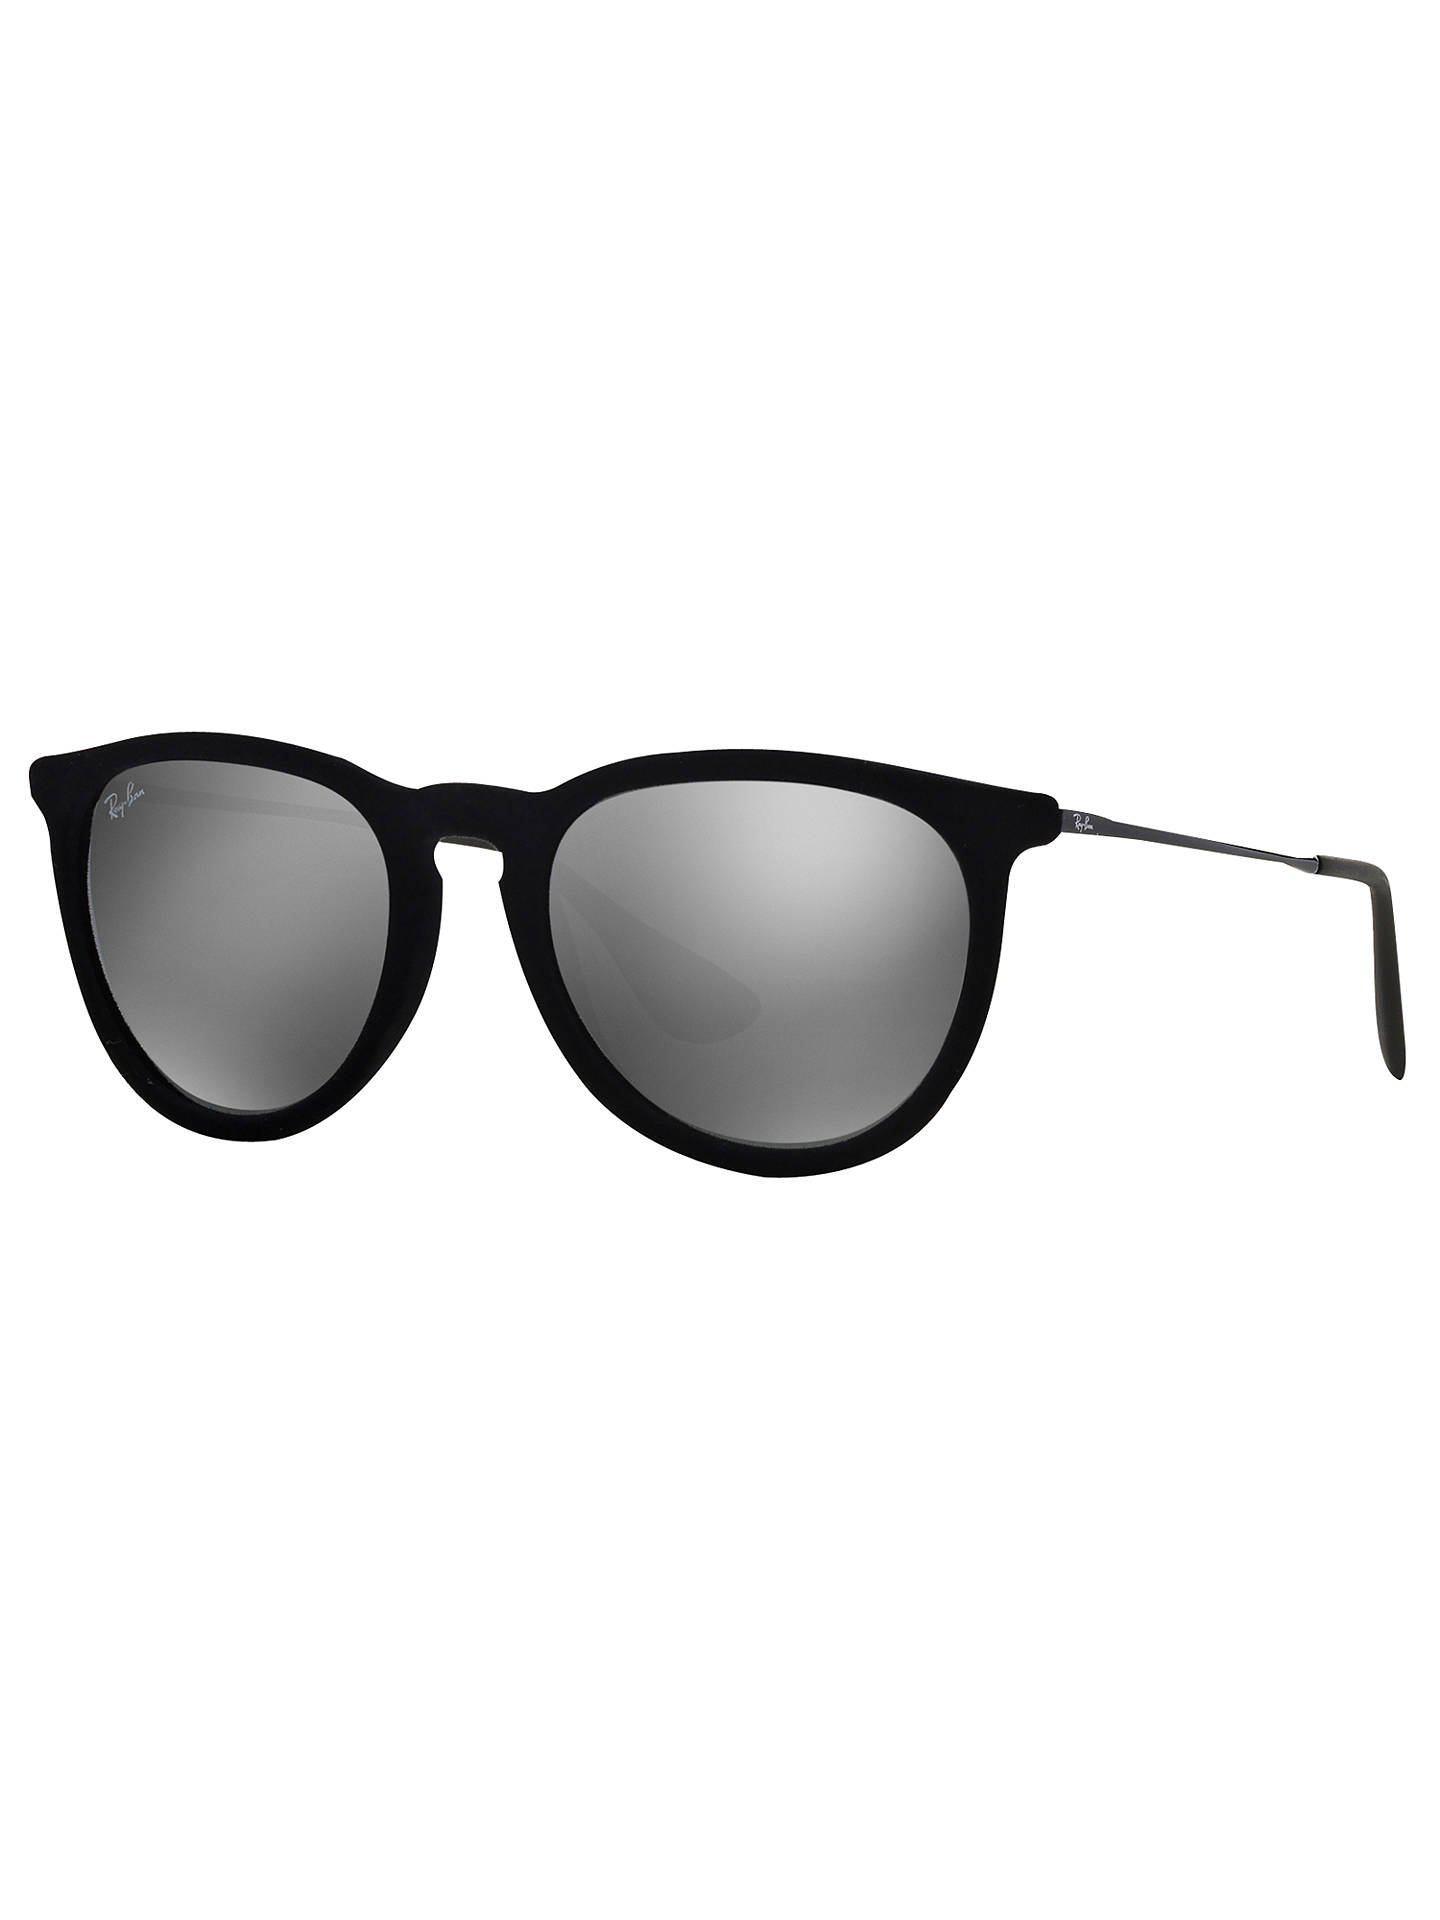 68a75ce76a Buy Ray-Ban RB4171 Erika Sunglasses